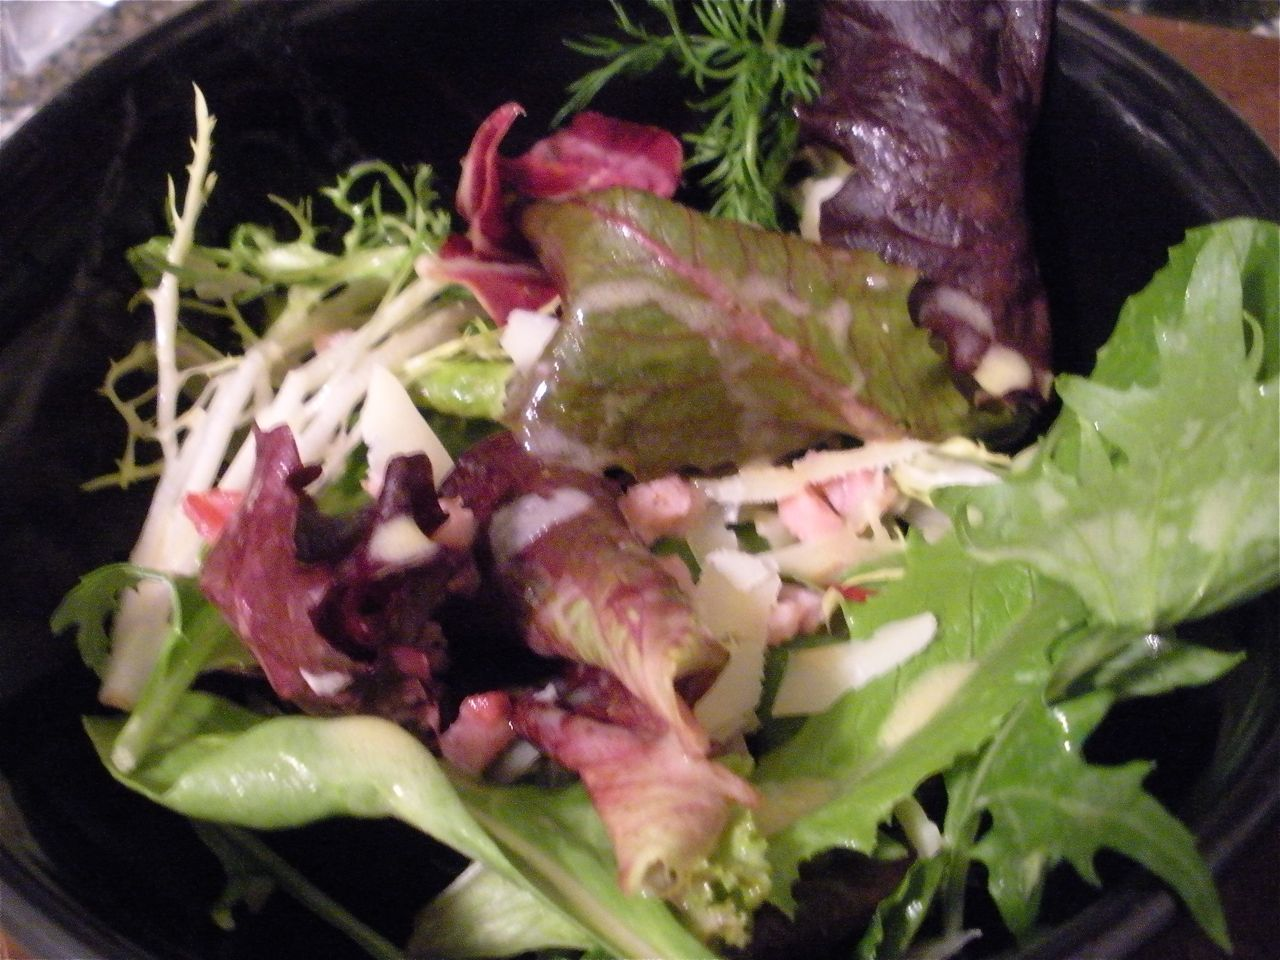 Mixed greens with pancetta and manchego and citrus vodka dressing